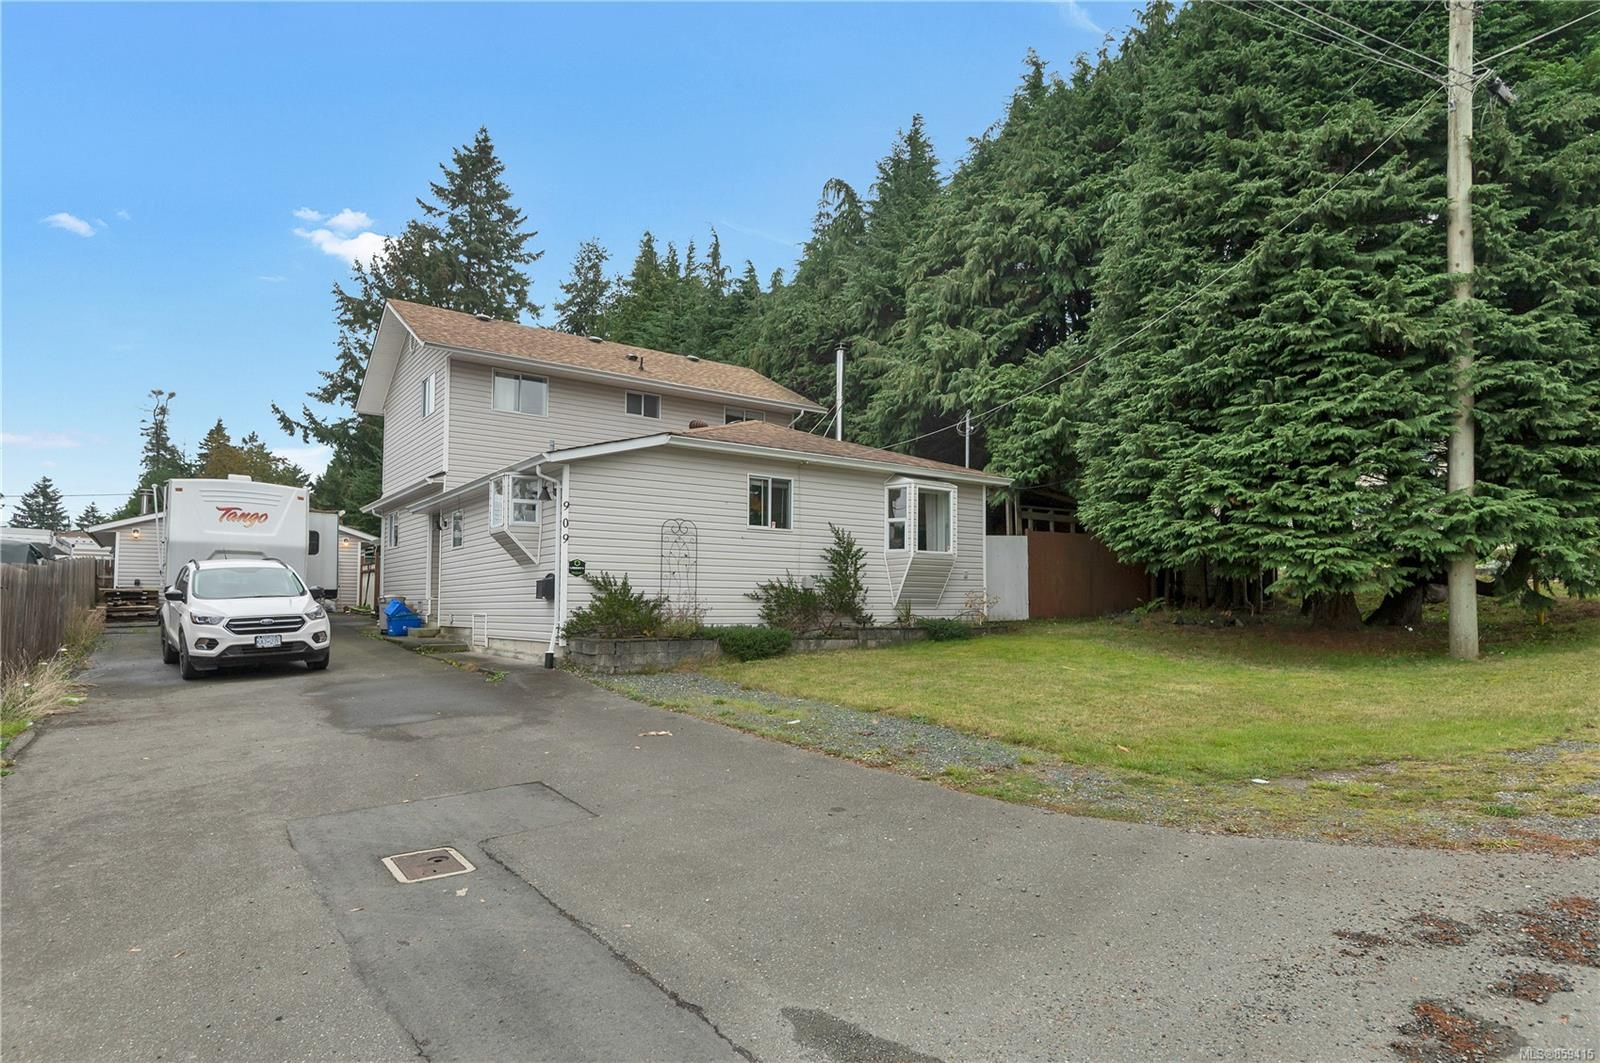 Main Photo: 909 Fir St in : CR Campbell River Central House for sale (Campbell River)  : MLS®# 859415